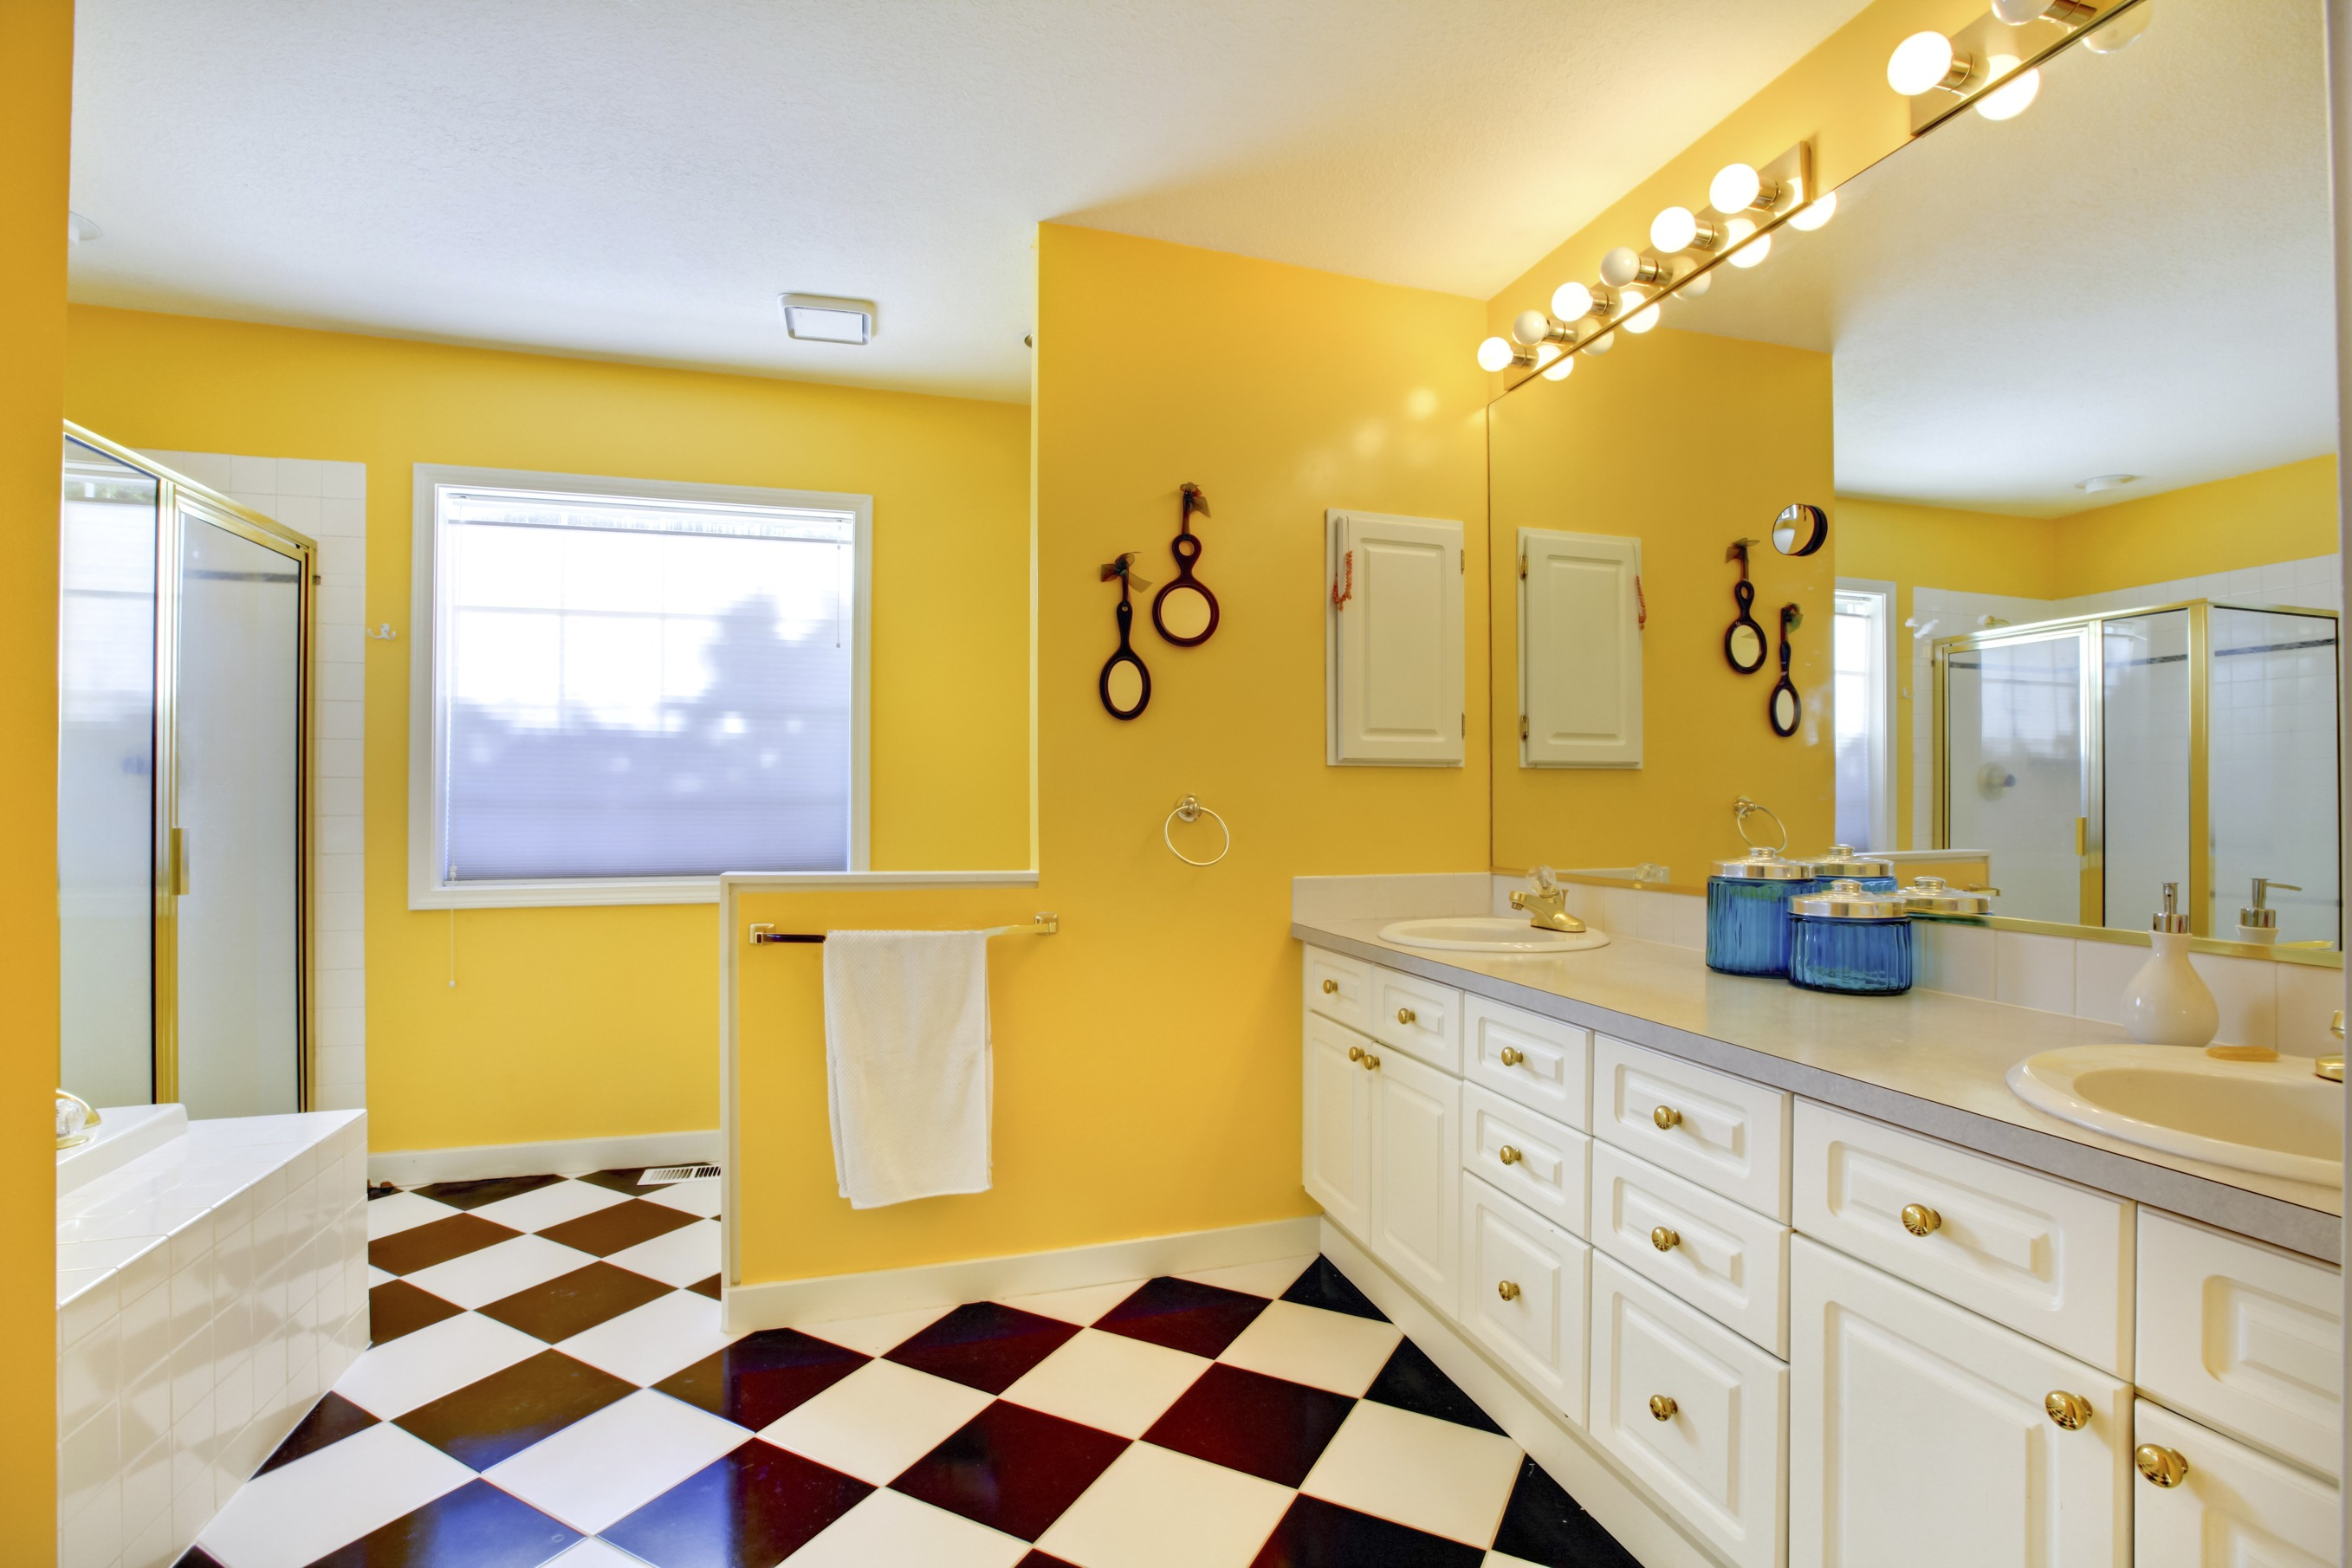 Bright yellow bathroom interior with white cabinets, tile.